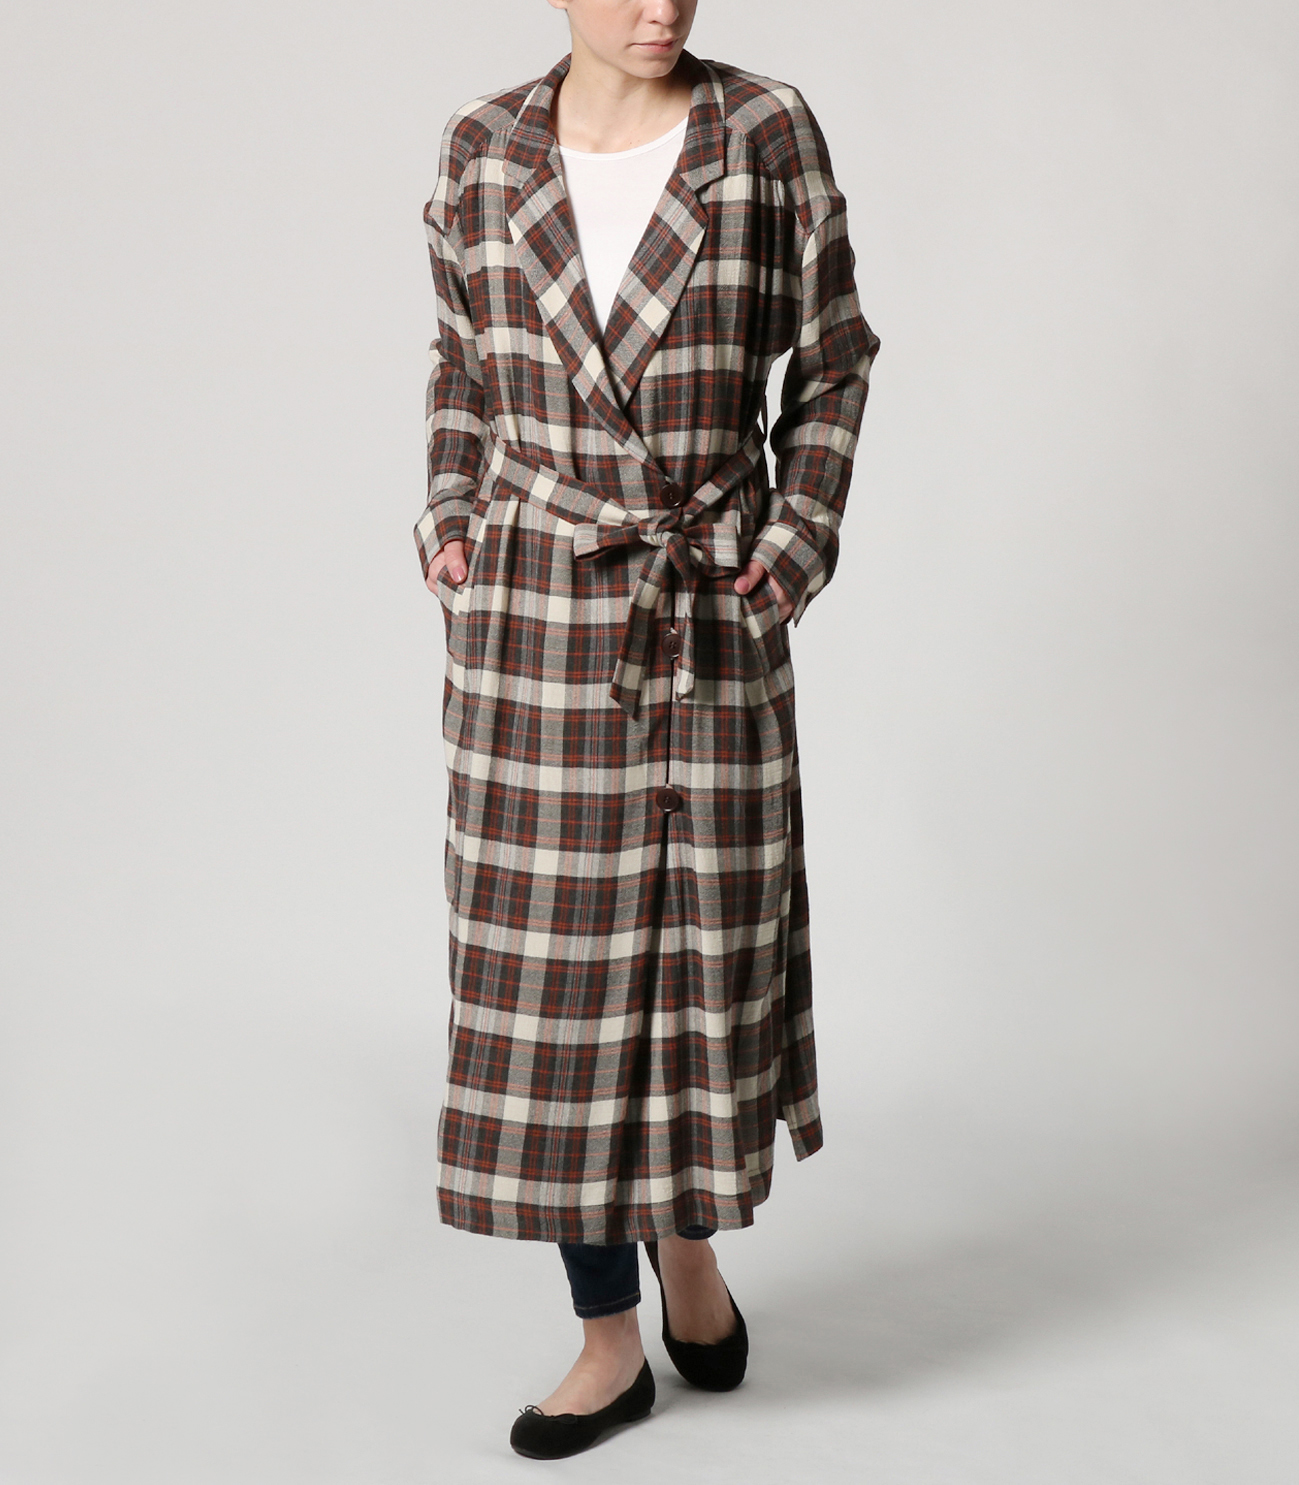 big plaid dress 詳細画像 grey 6